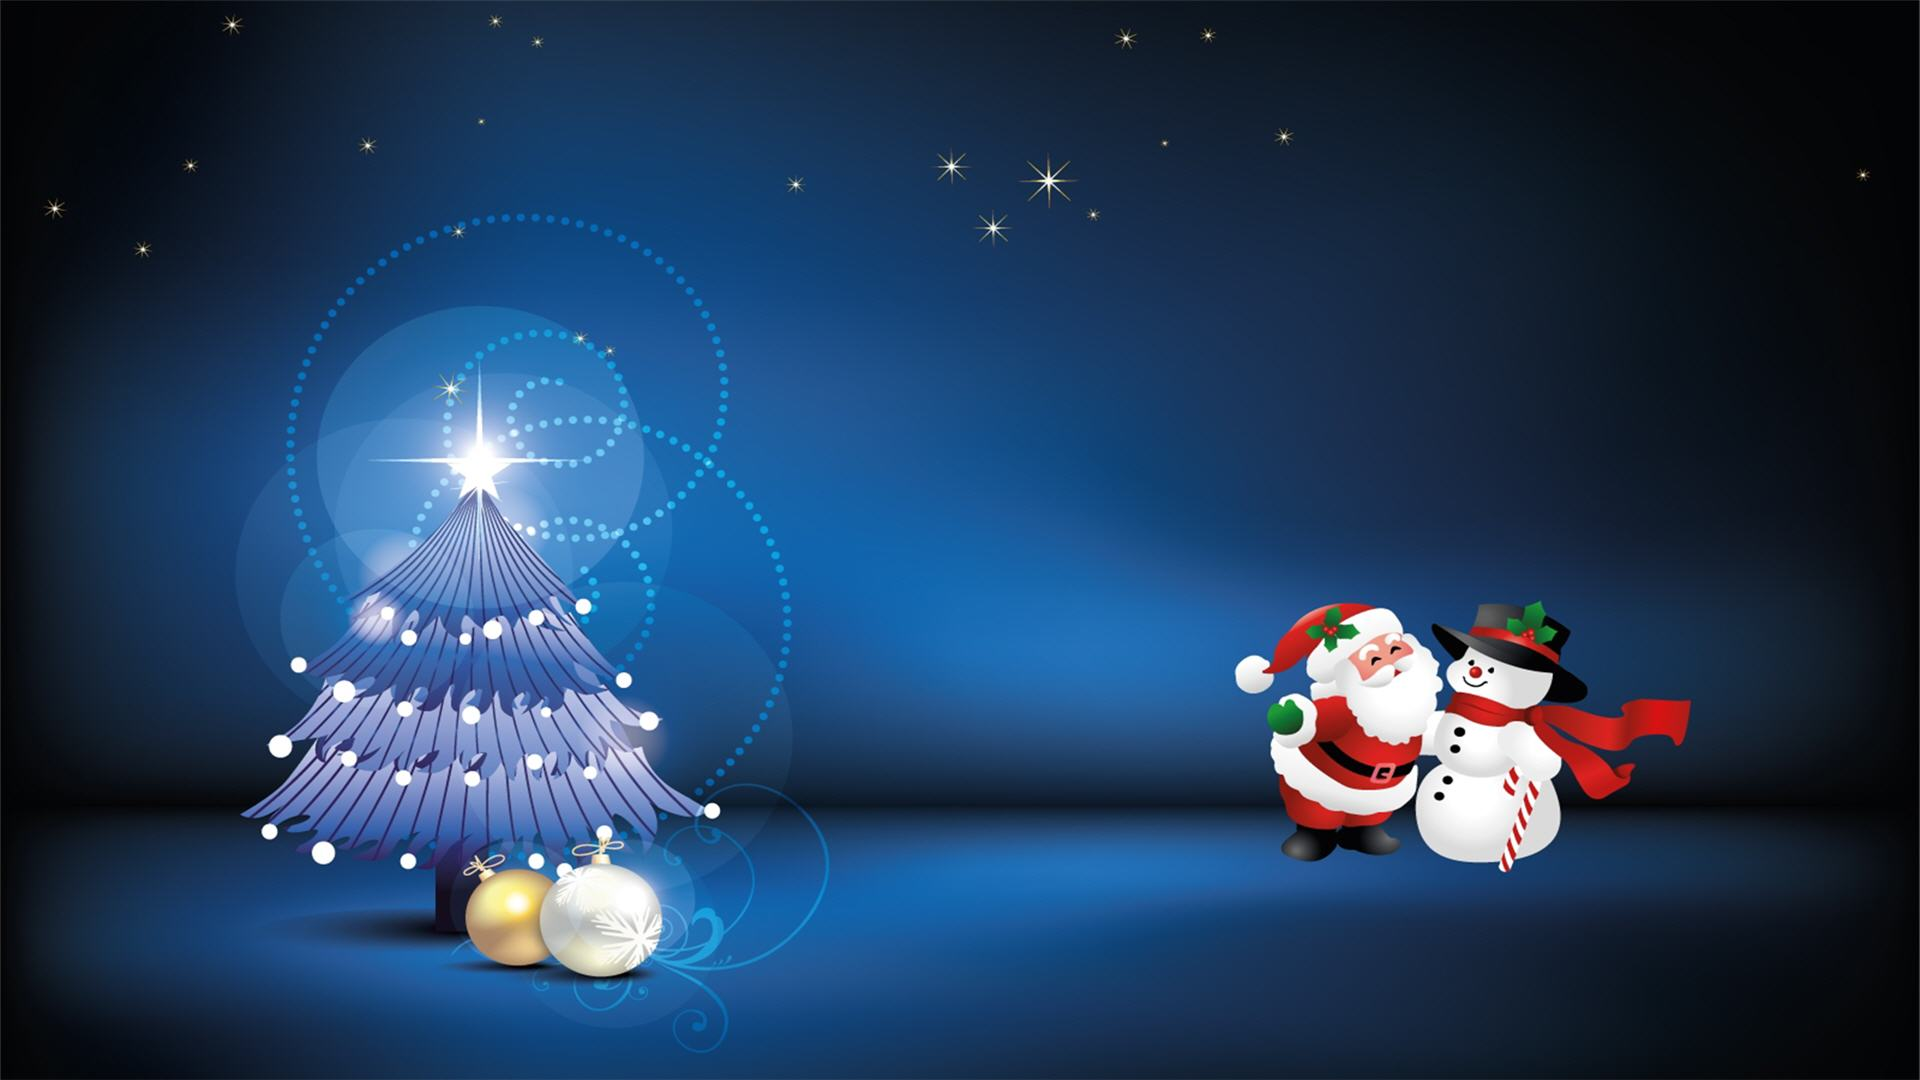 Xmas Wallpaper For Computer Wallpapersafari